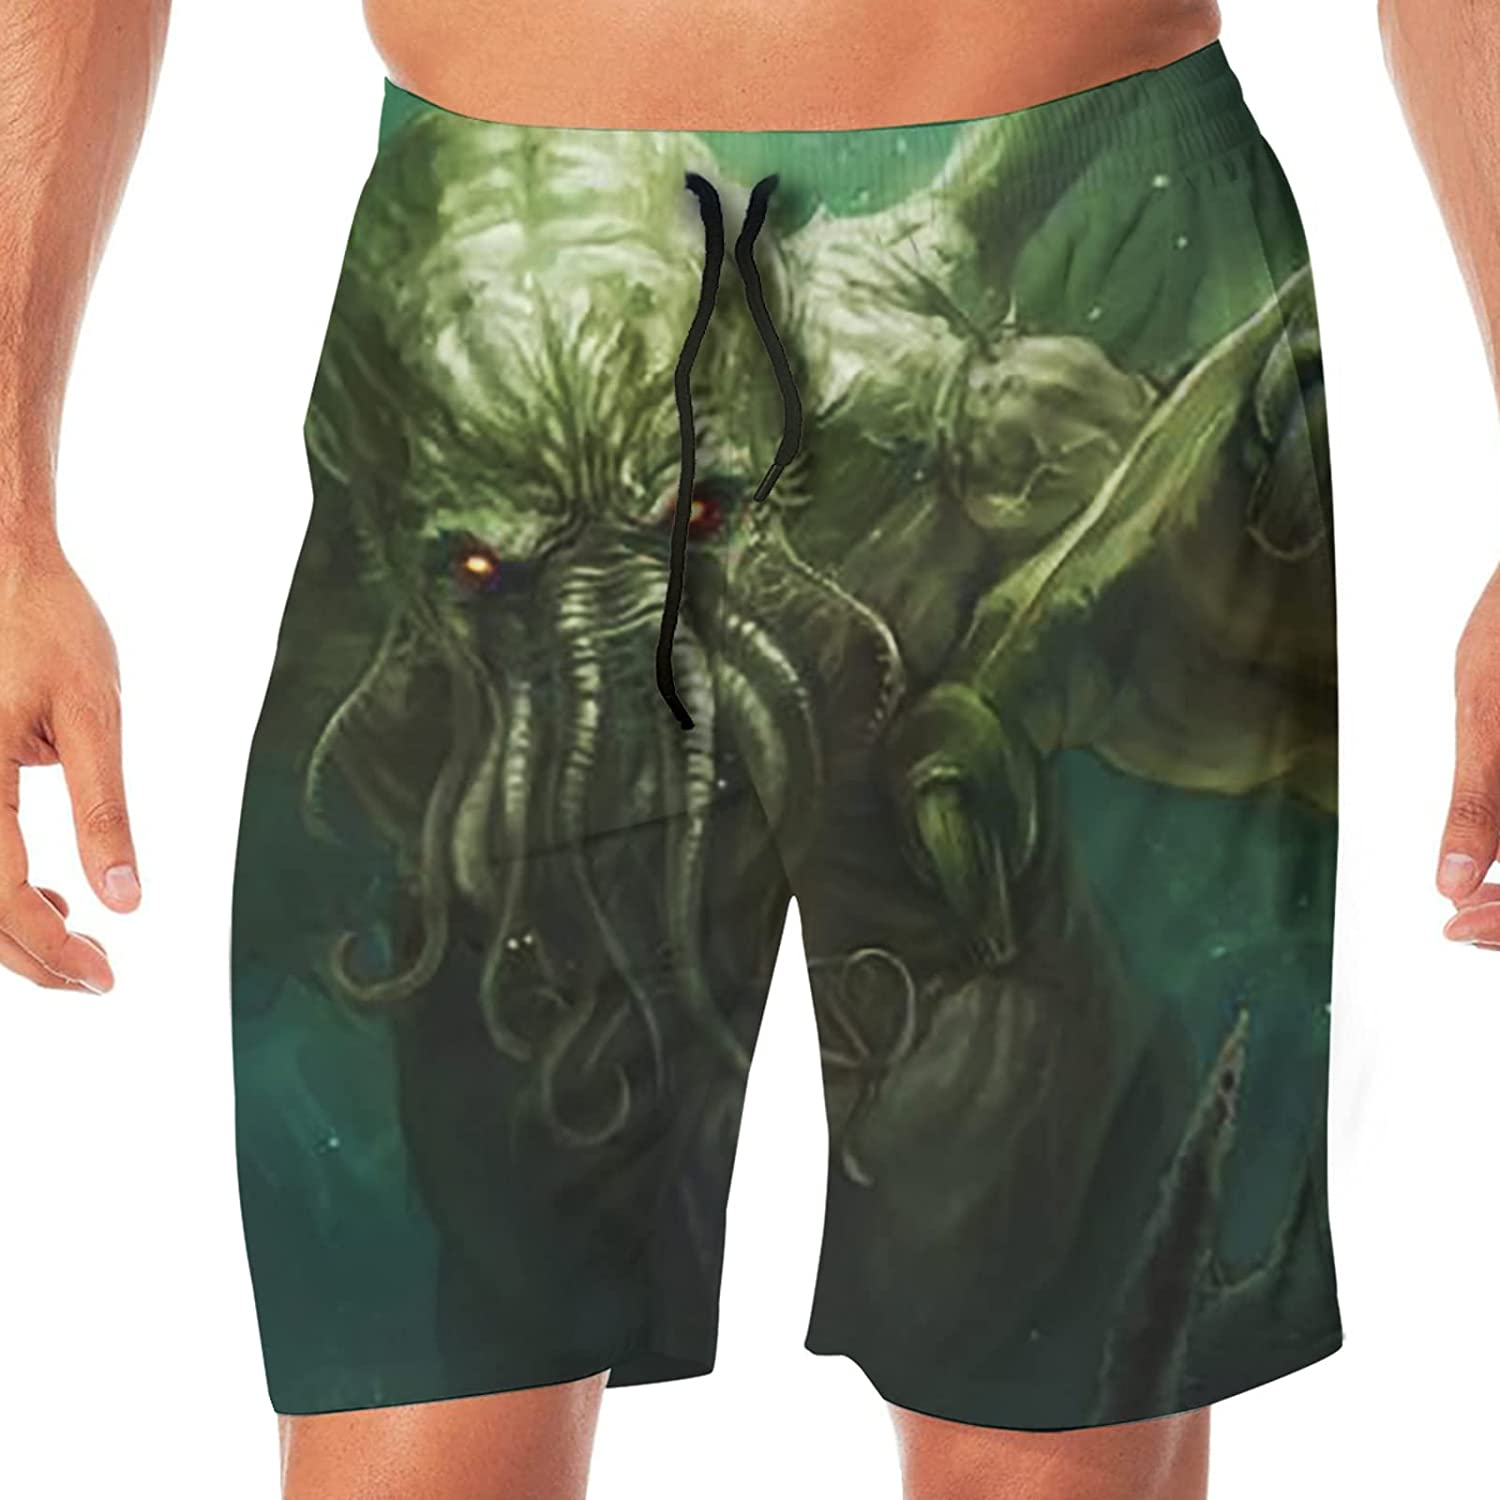 PEKIVIDE Men's Cthulhu Monster Mythos Puzzle Dragons Swim Trunks Quick Dry Board Shorts Swim with Pockets Beach Bathing Suits